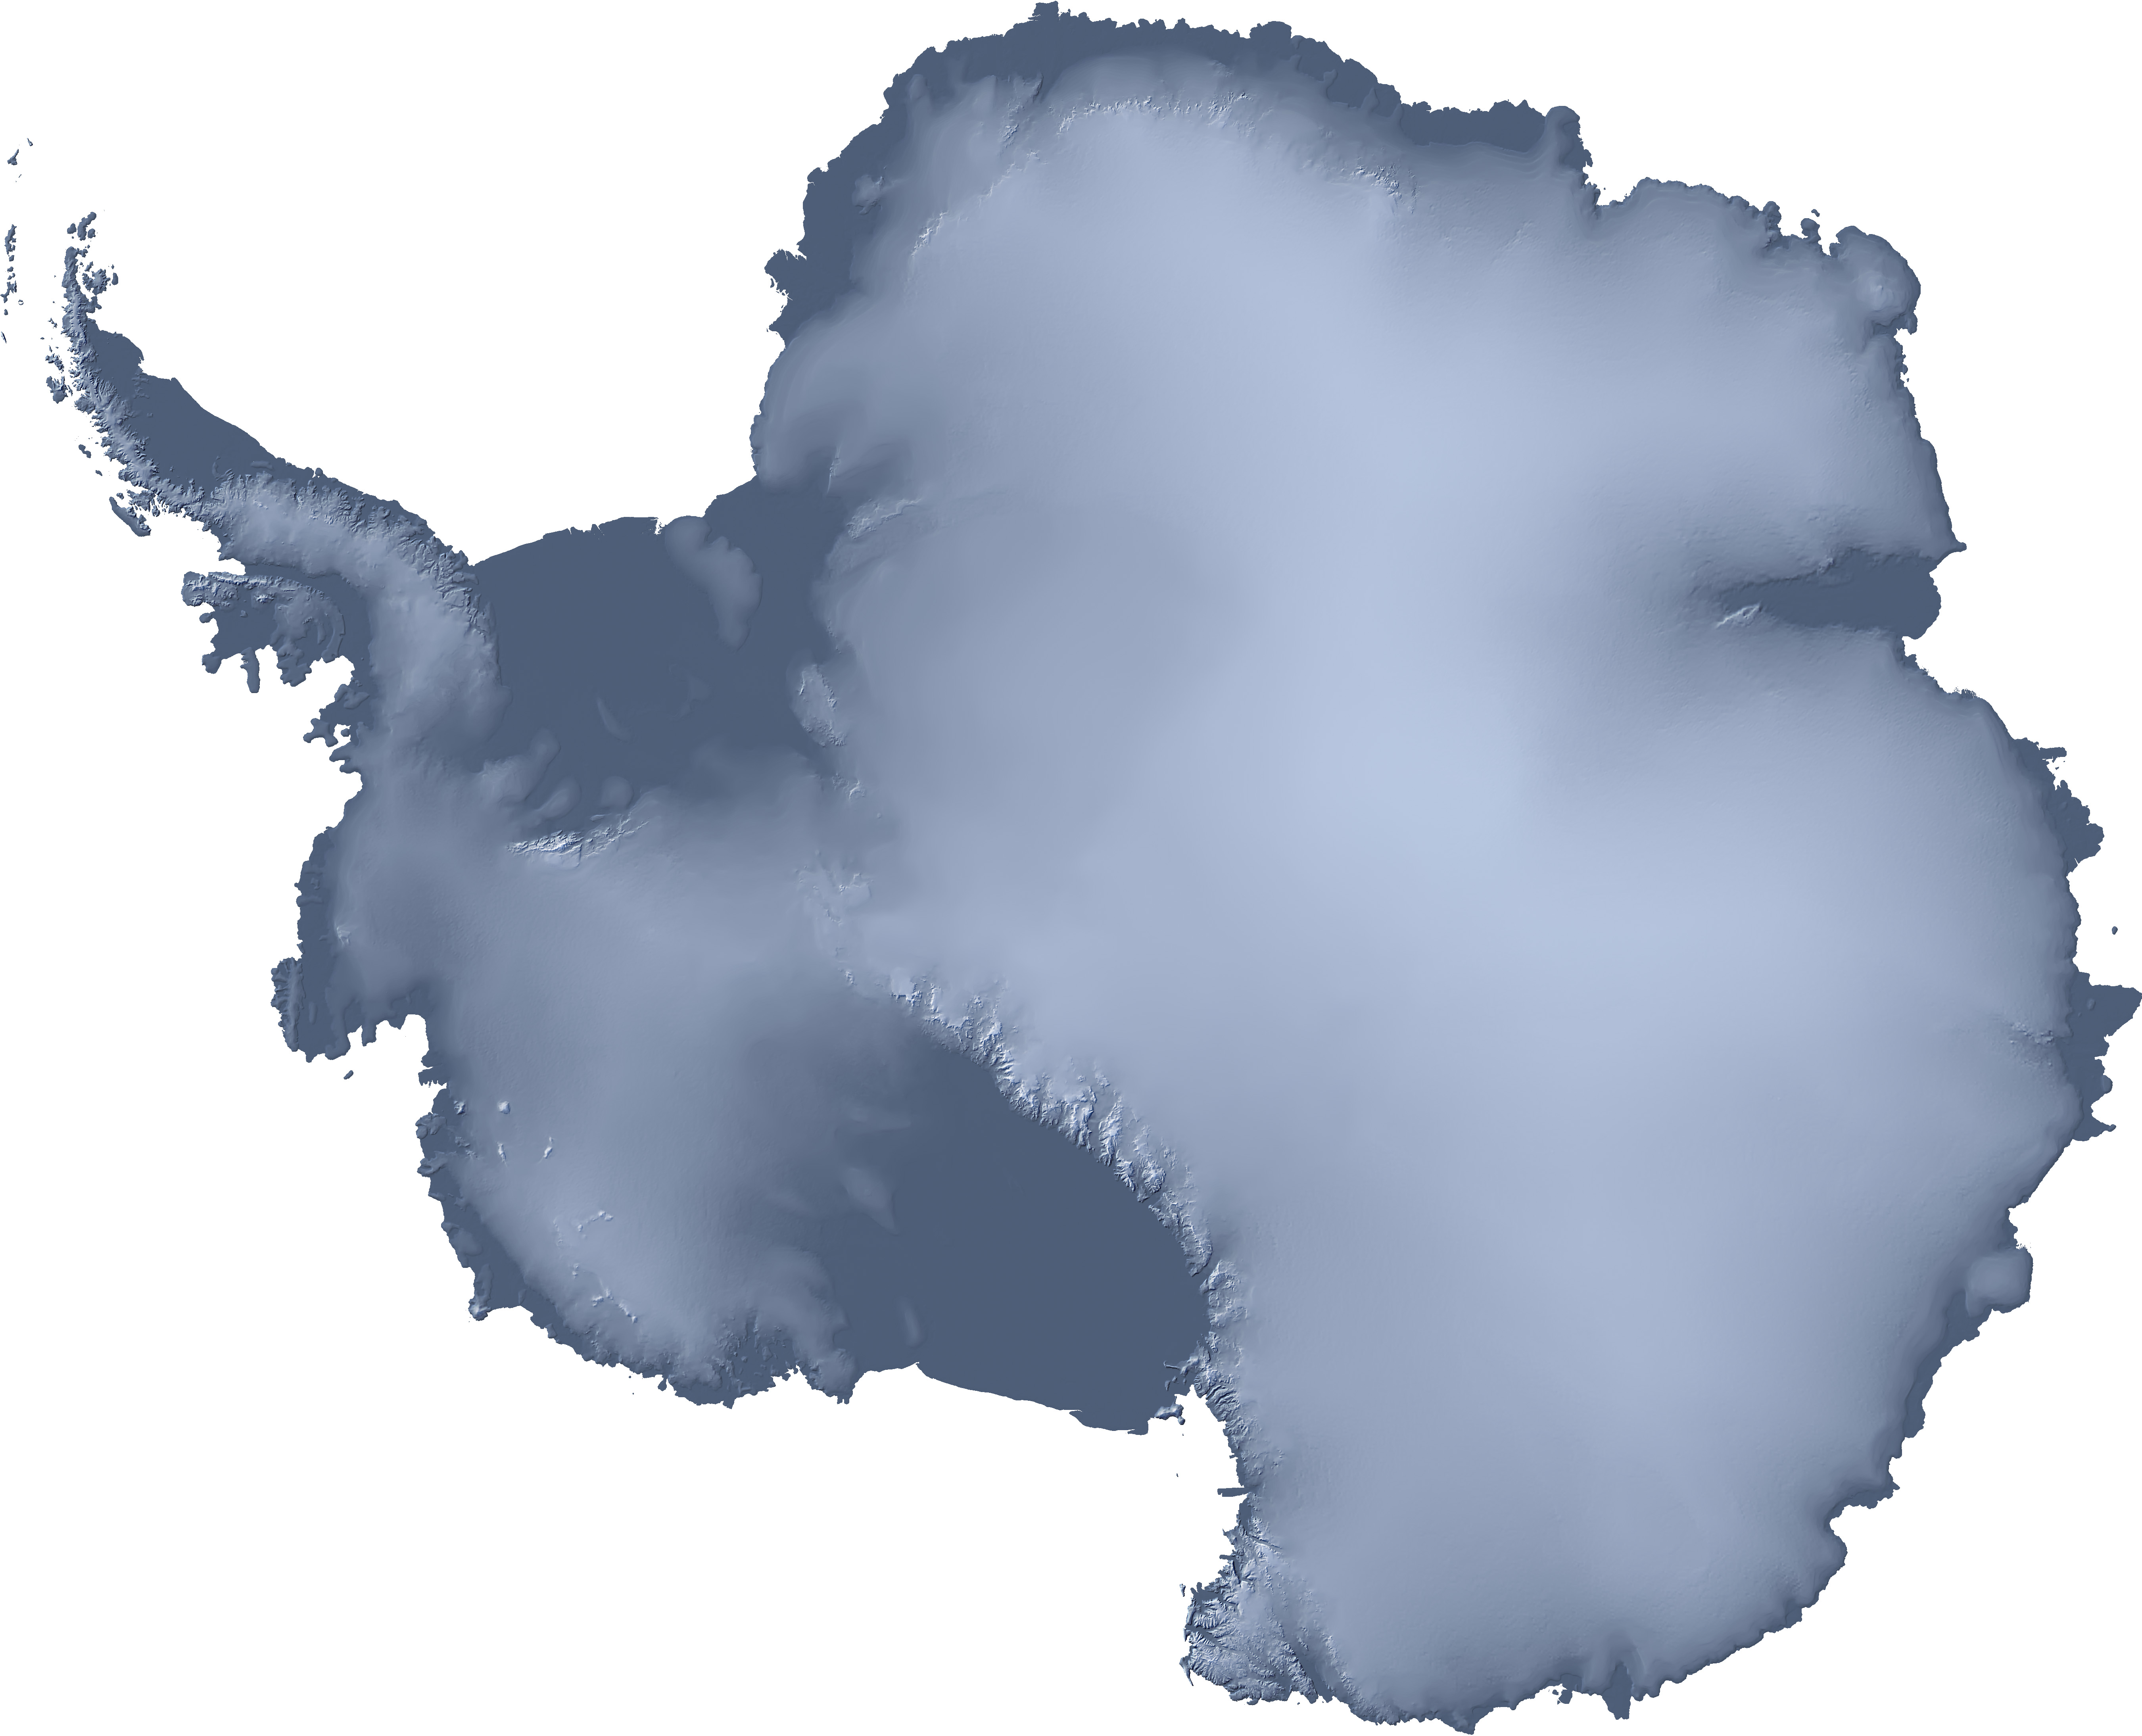 File:Antarctica unlabeled physical map.jpg - Wikimedia Commons